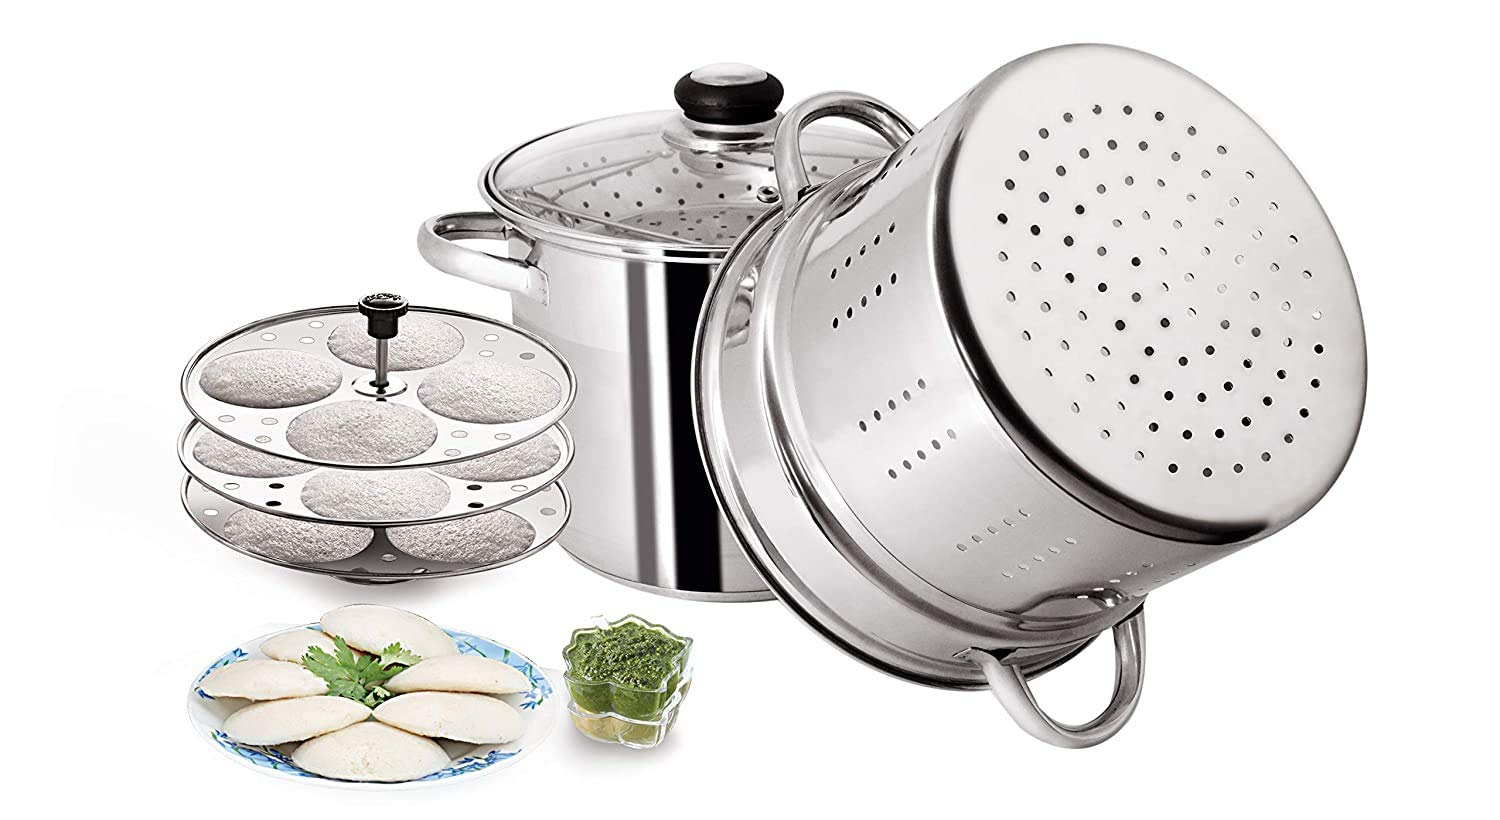 PRISTINE Stainless Steel Tri Ply Induction Compatible Multi Purpose Steamer with Idli Plates, 5 qt./4.75 Liters Steamers   Idli Makers